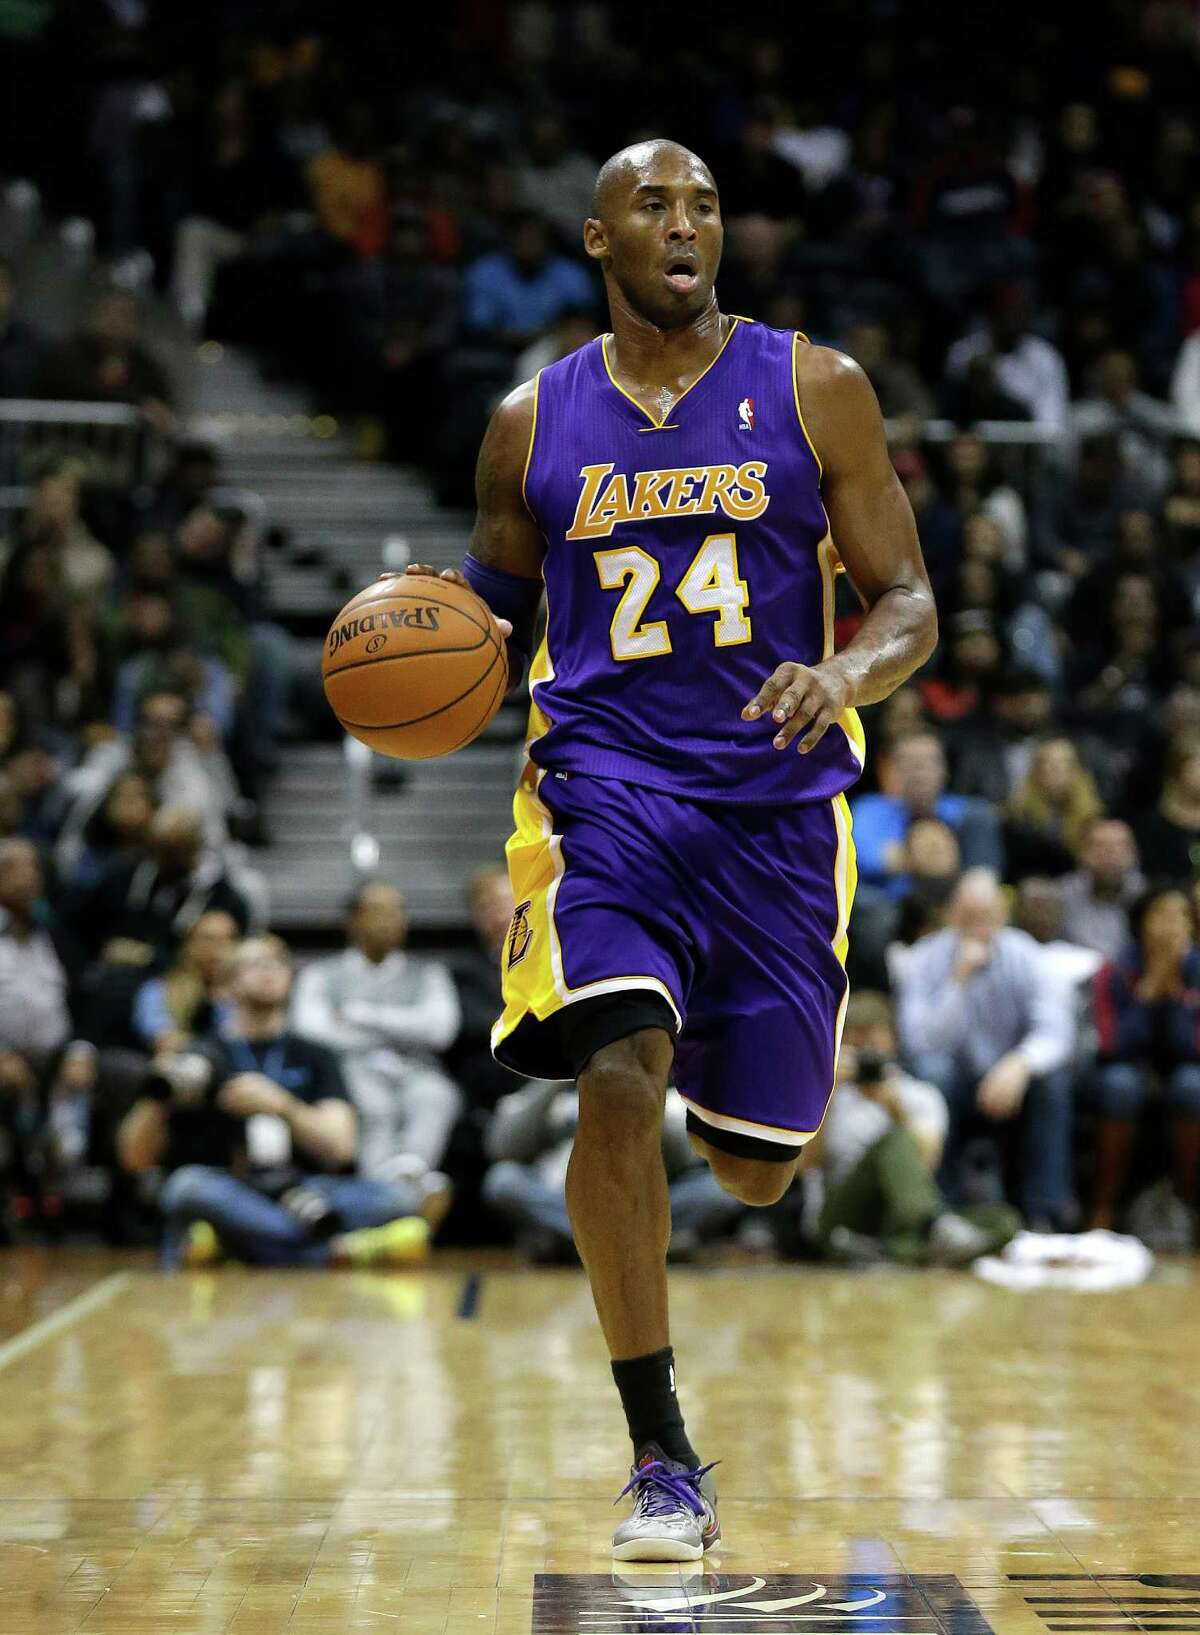 25. Kobe Bryant Team: Los Angeles Lakers Position: Shooting guard 2013-14 Stats: 13.8 PPG, 4.3 RPG, 6.3 APG, 1.2 SPG (only played six games due to injury)